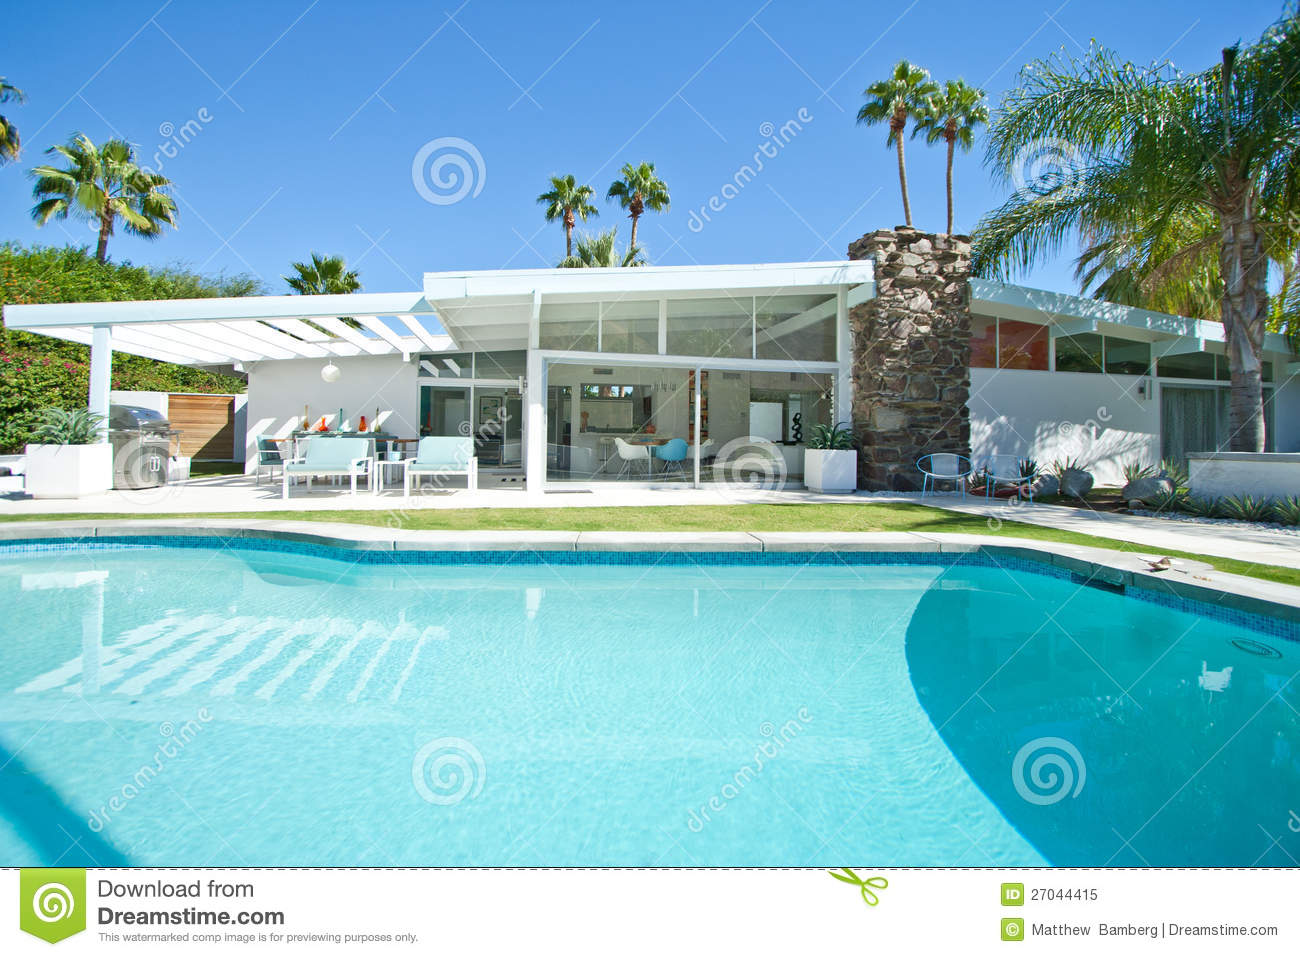 palm-springs-swimming-pool-27044415 Palm Springs Mid Century House Plans on palm springs mid century furniture, palm springs mid century real estate, palm springs mid century design, palm springs mid century art, palm springs mid century flooring, palm springs mid century landscaping, palm springs mid century home,